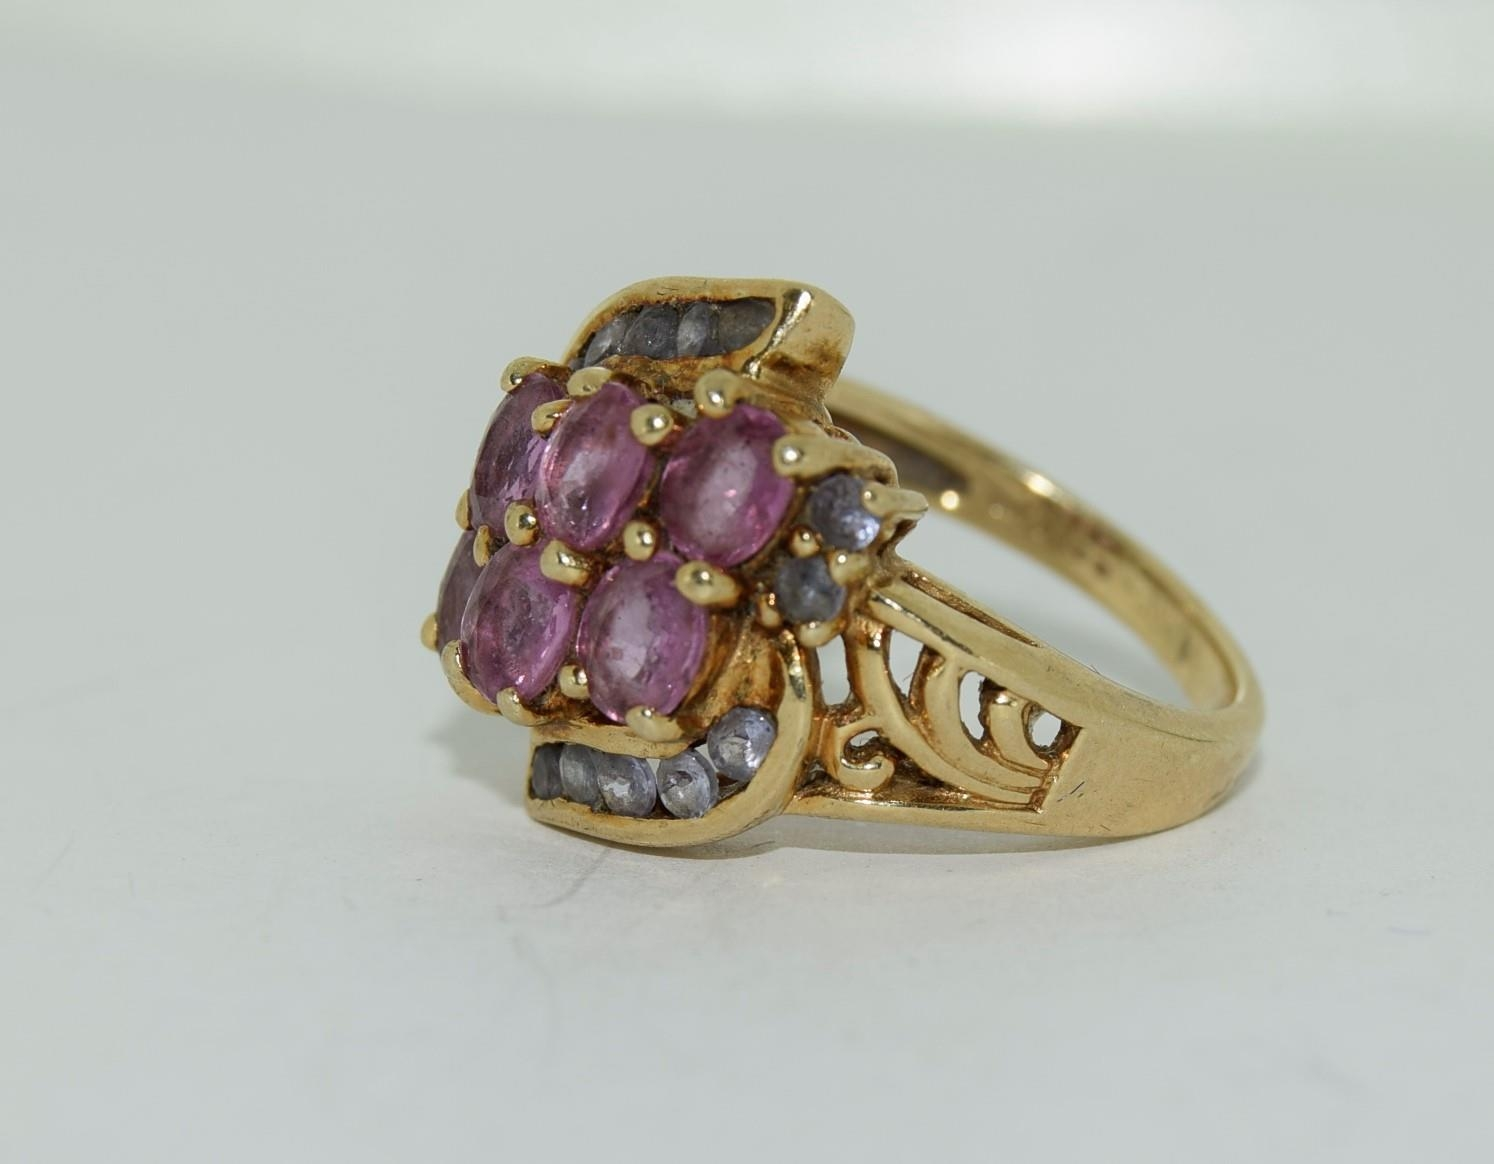 9ct gold ladies pink tourmaline and sapphire twist ring size L 4.9gm - Image 8 of 10